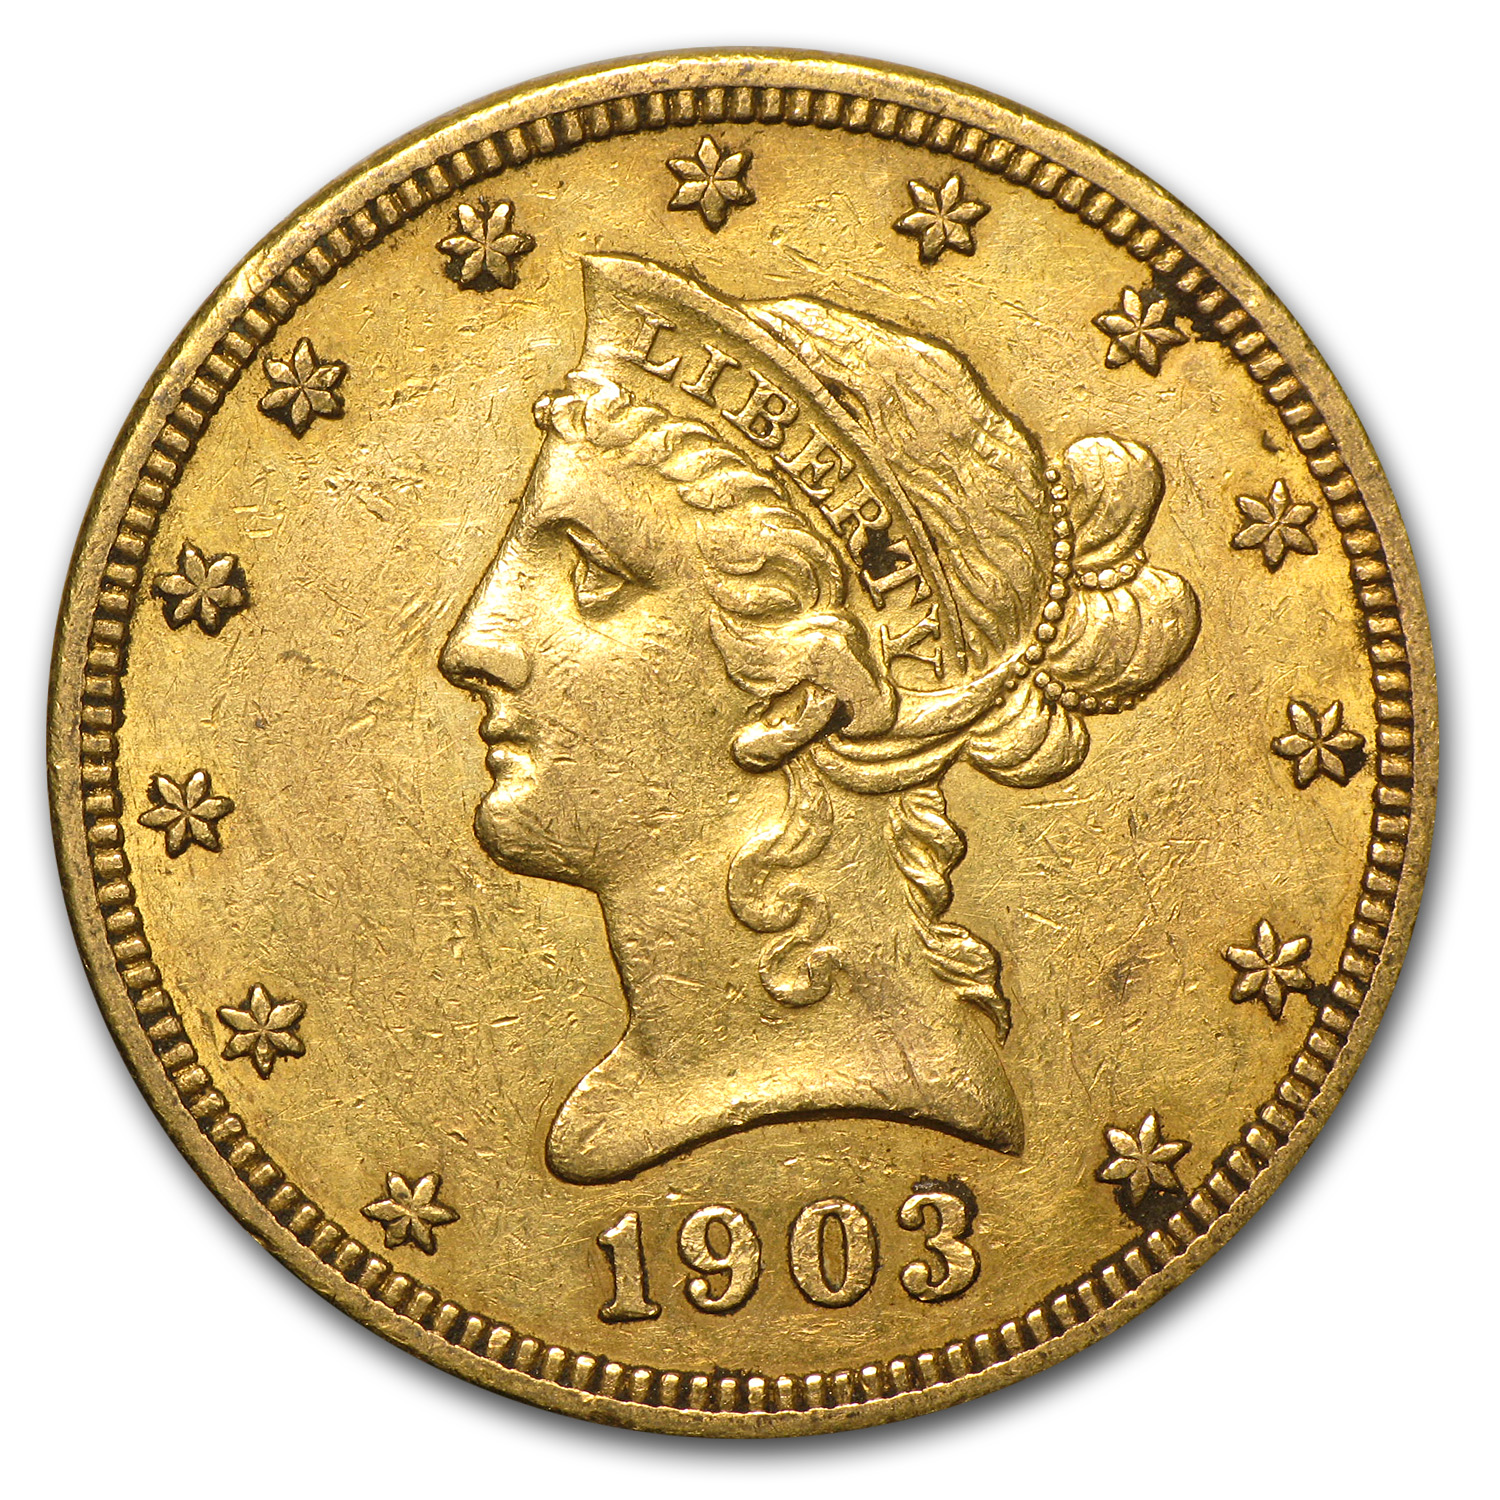 1903-O $10 Liberty Gold Eagle - Extra Fine